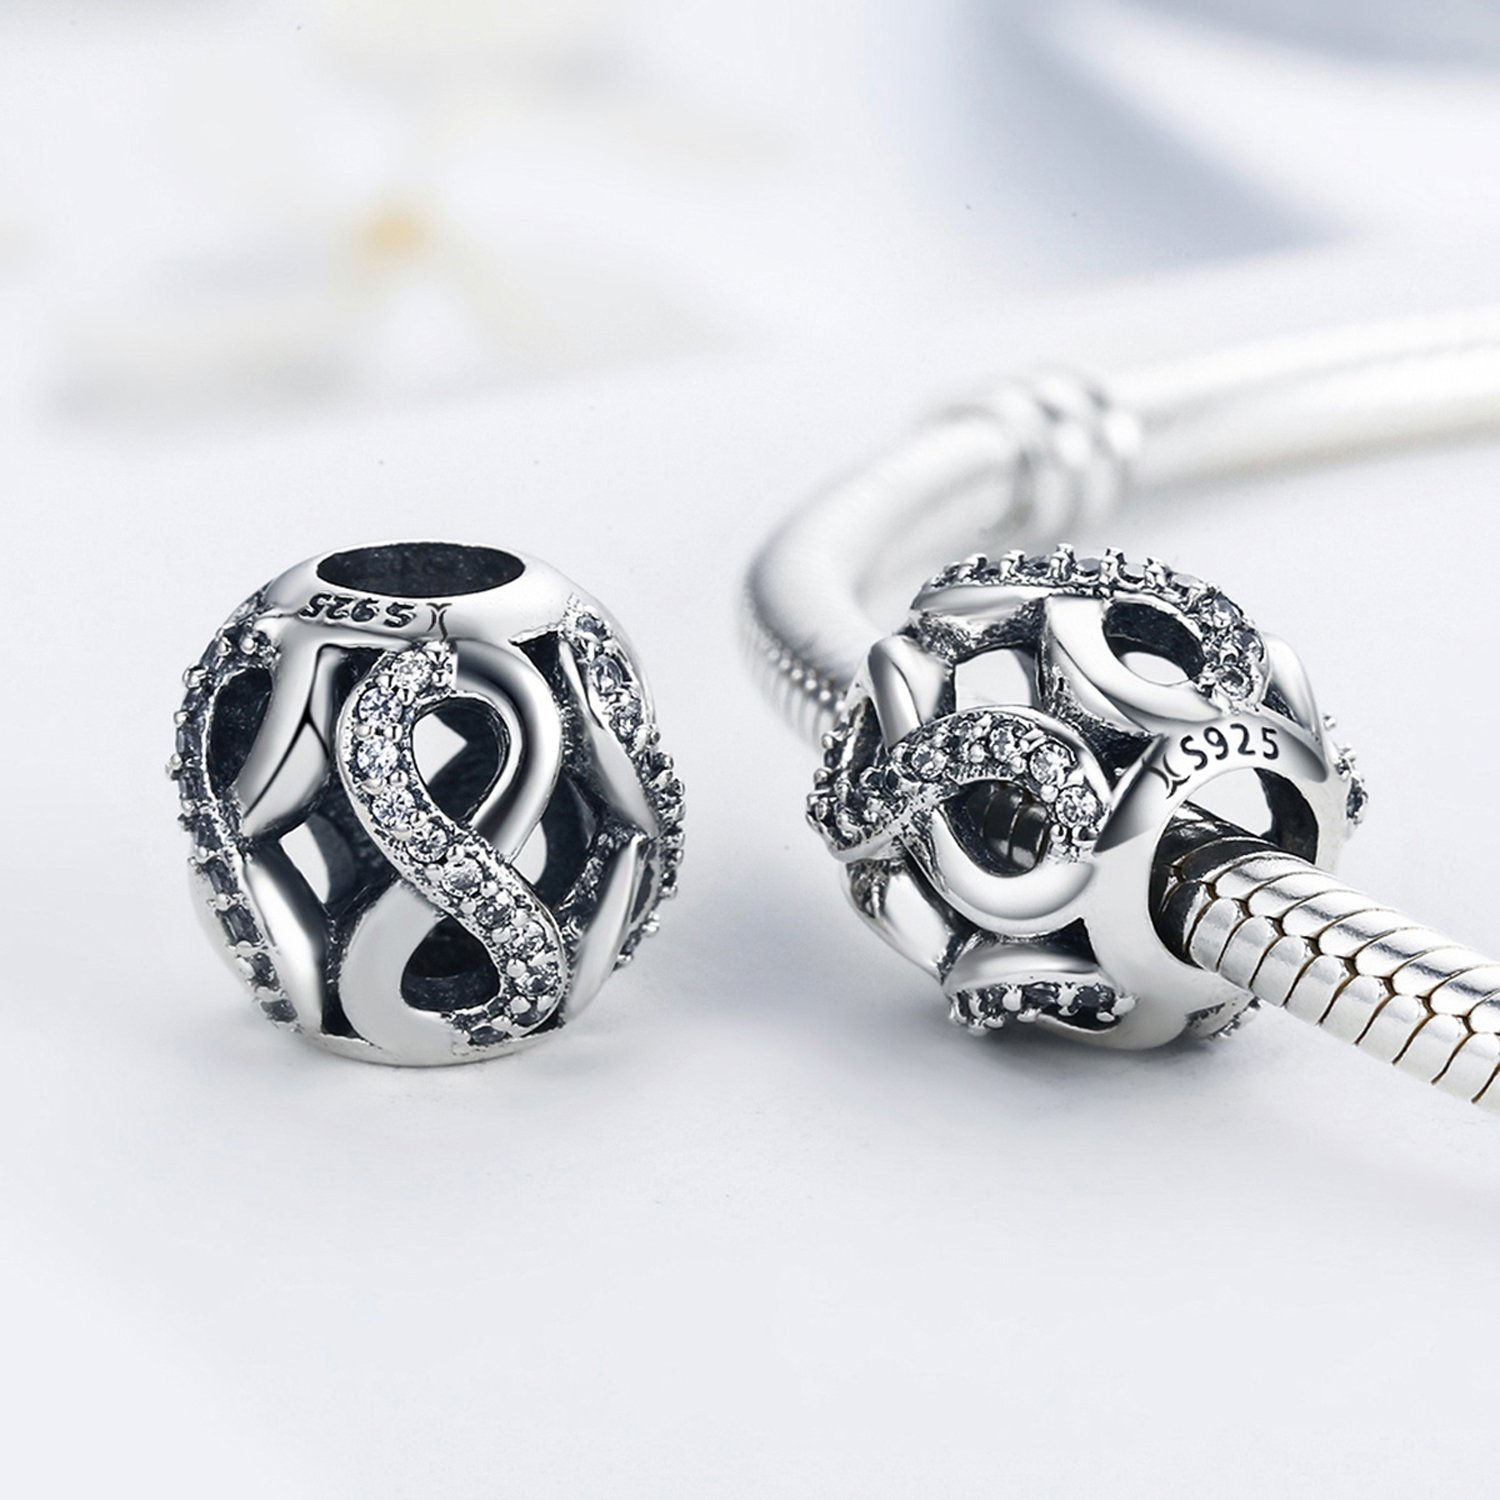 Sterling Silver Infinity Love Bead Charms,Shine Openwork Charm Beads with AAA CZ Fit Snake Chain Bracelet (Infinity Love Charm) by XingYue Jewelry (Image #2)